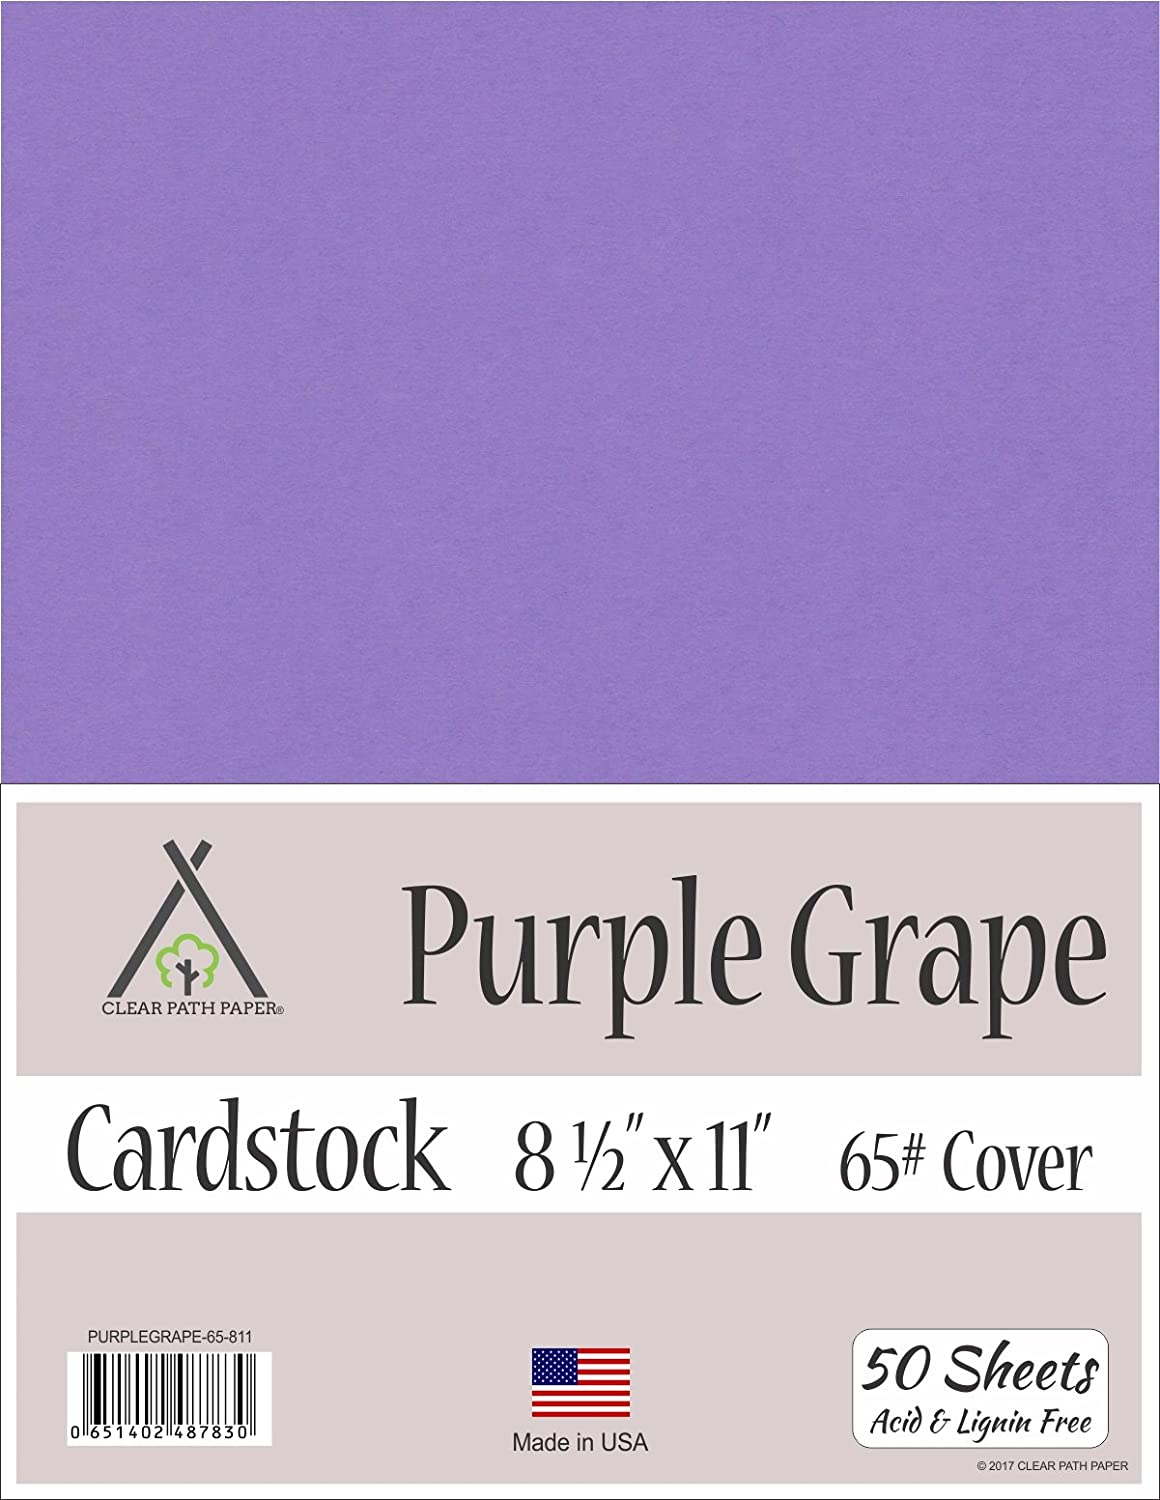 Purple Grape Cardstock - 8.5 x 11 inch - 65Lb Cover - 50 Sheets Clear Path Paper 4336868168